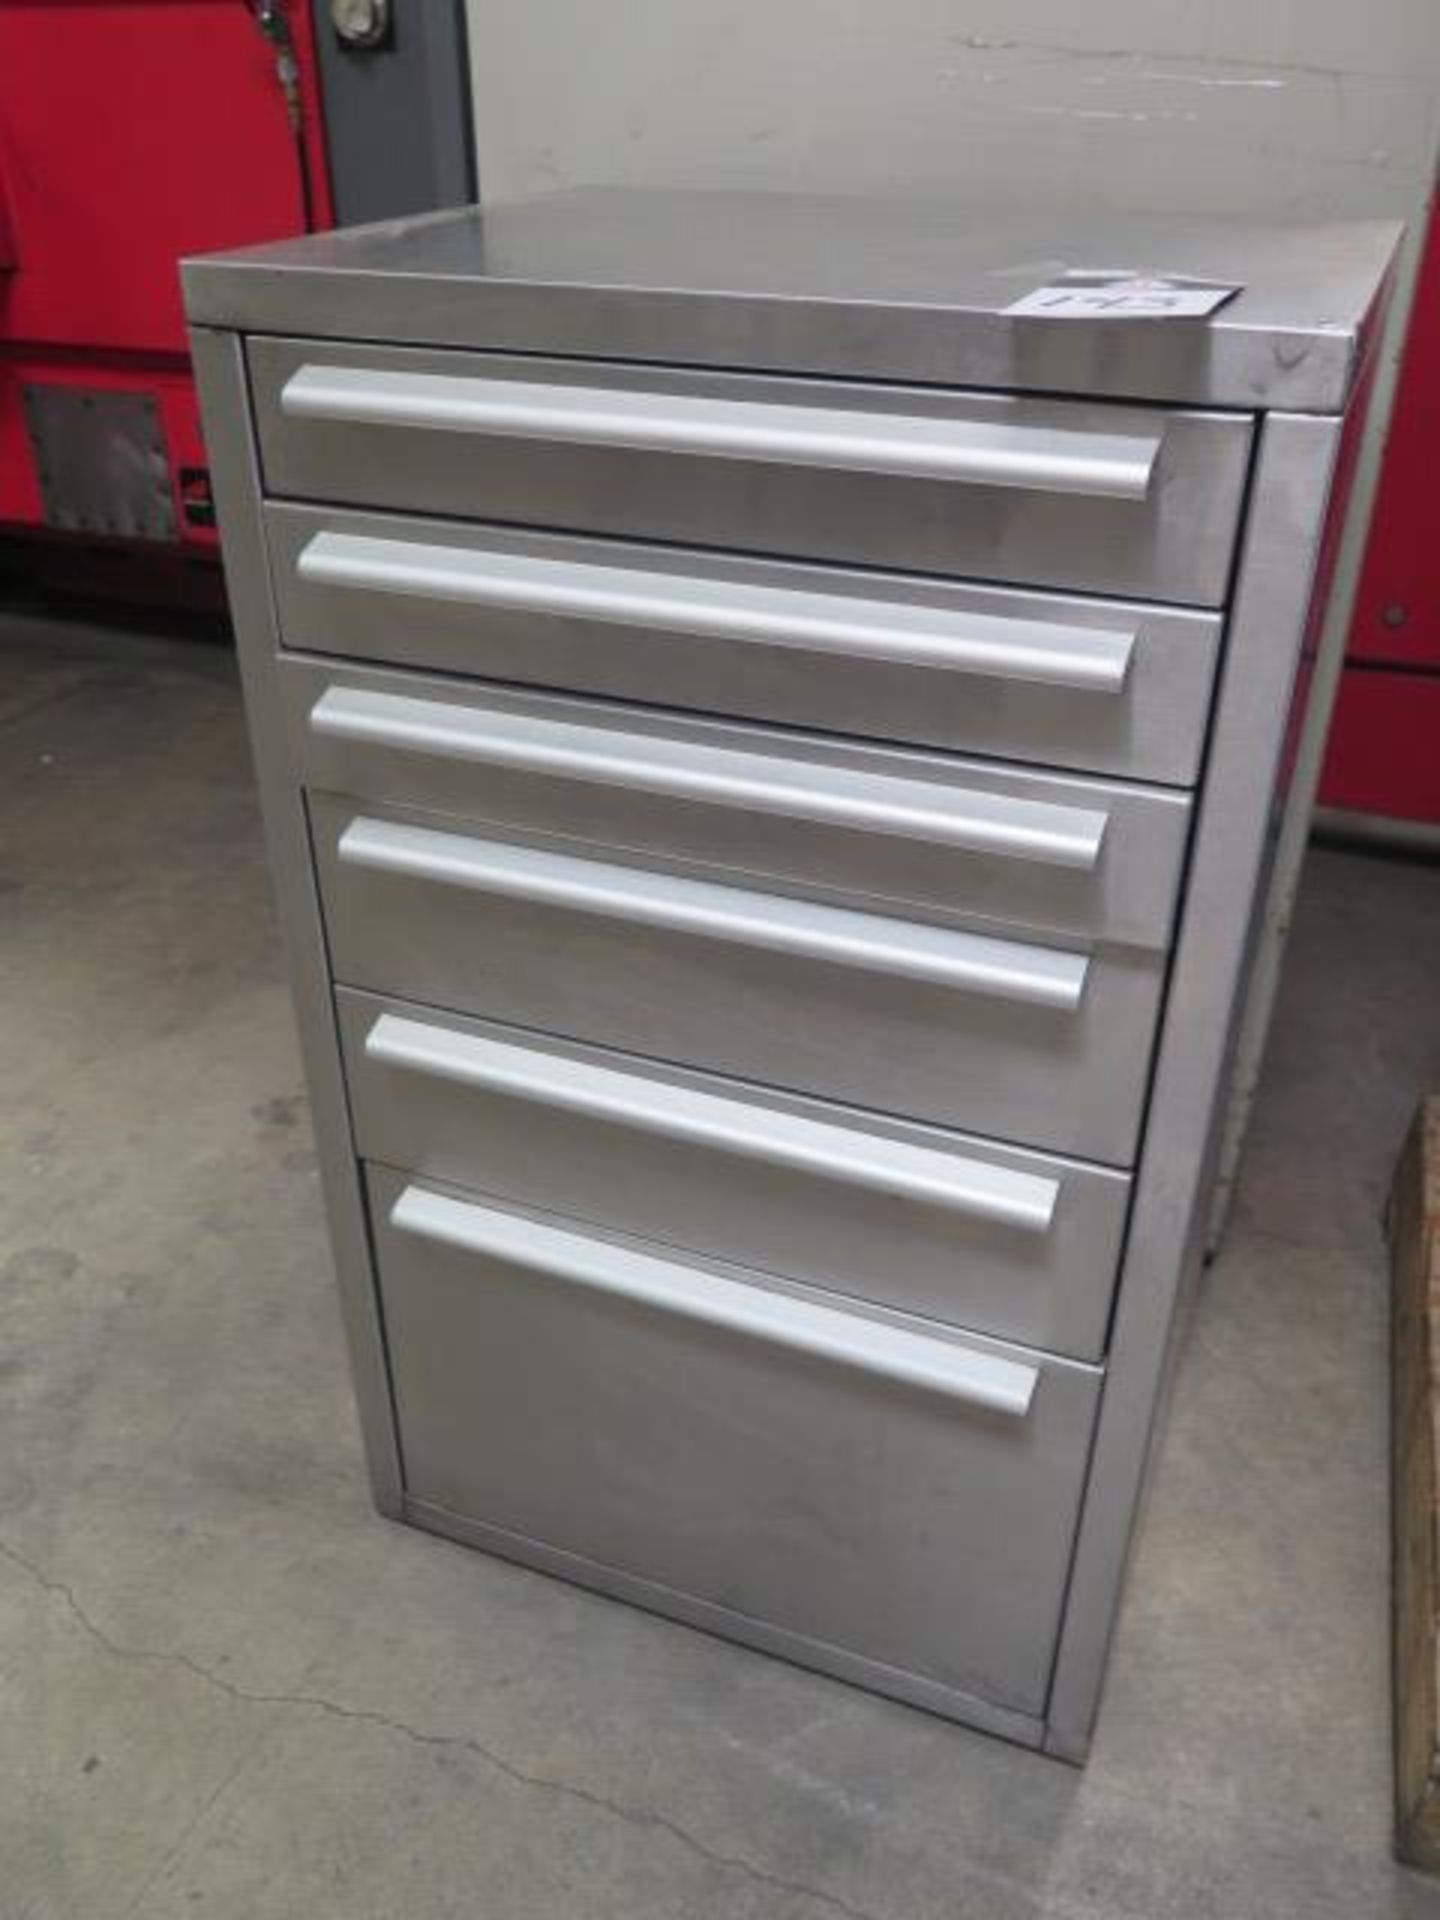 Stainless Steel 5-Drawer Tooling Cabinet (SOLD AS-IS - NO WARRANTY)